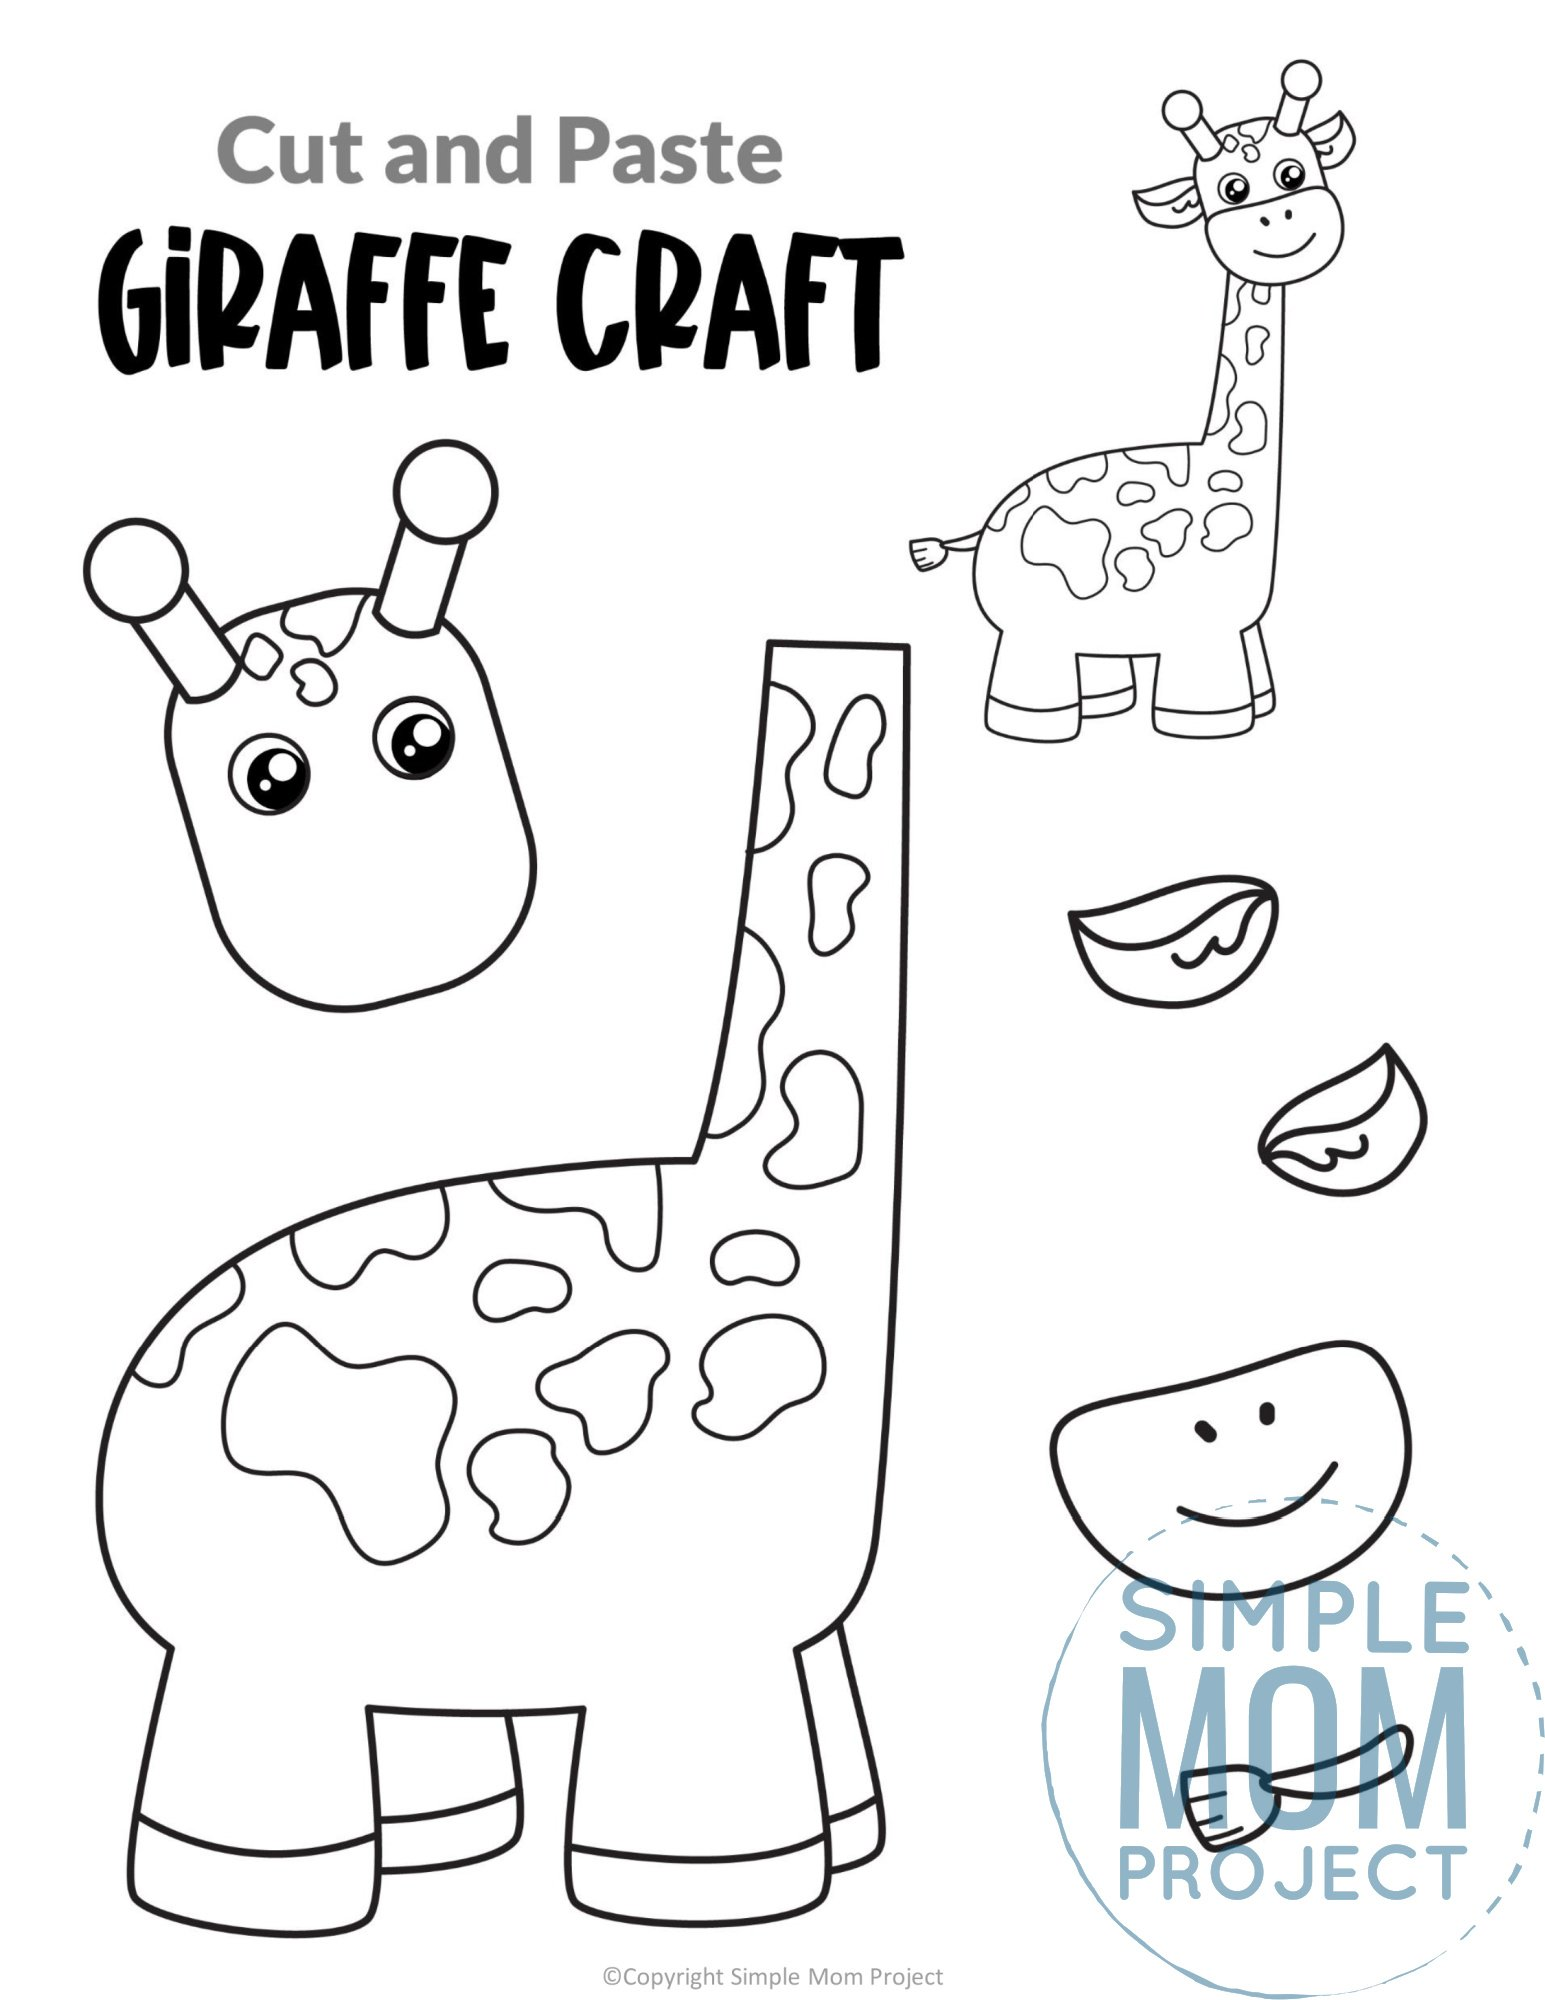 Giraffe Cut and Paste Craft for Toddlers, Preschoolers and Kindergarteners